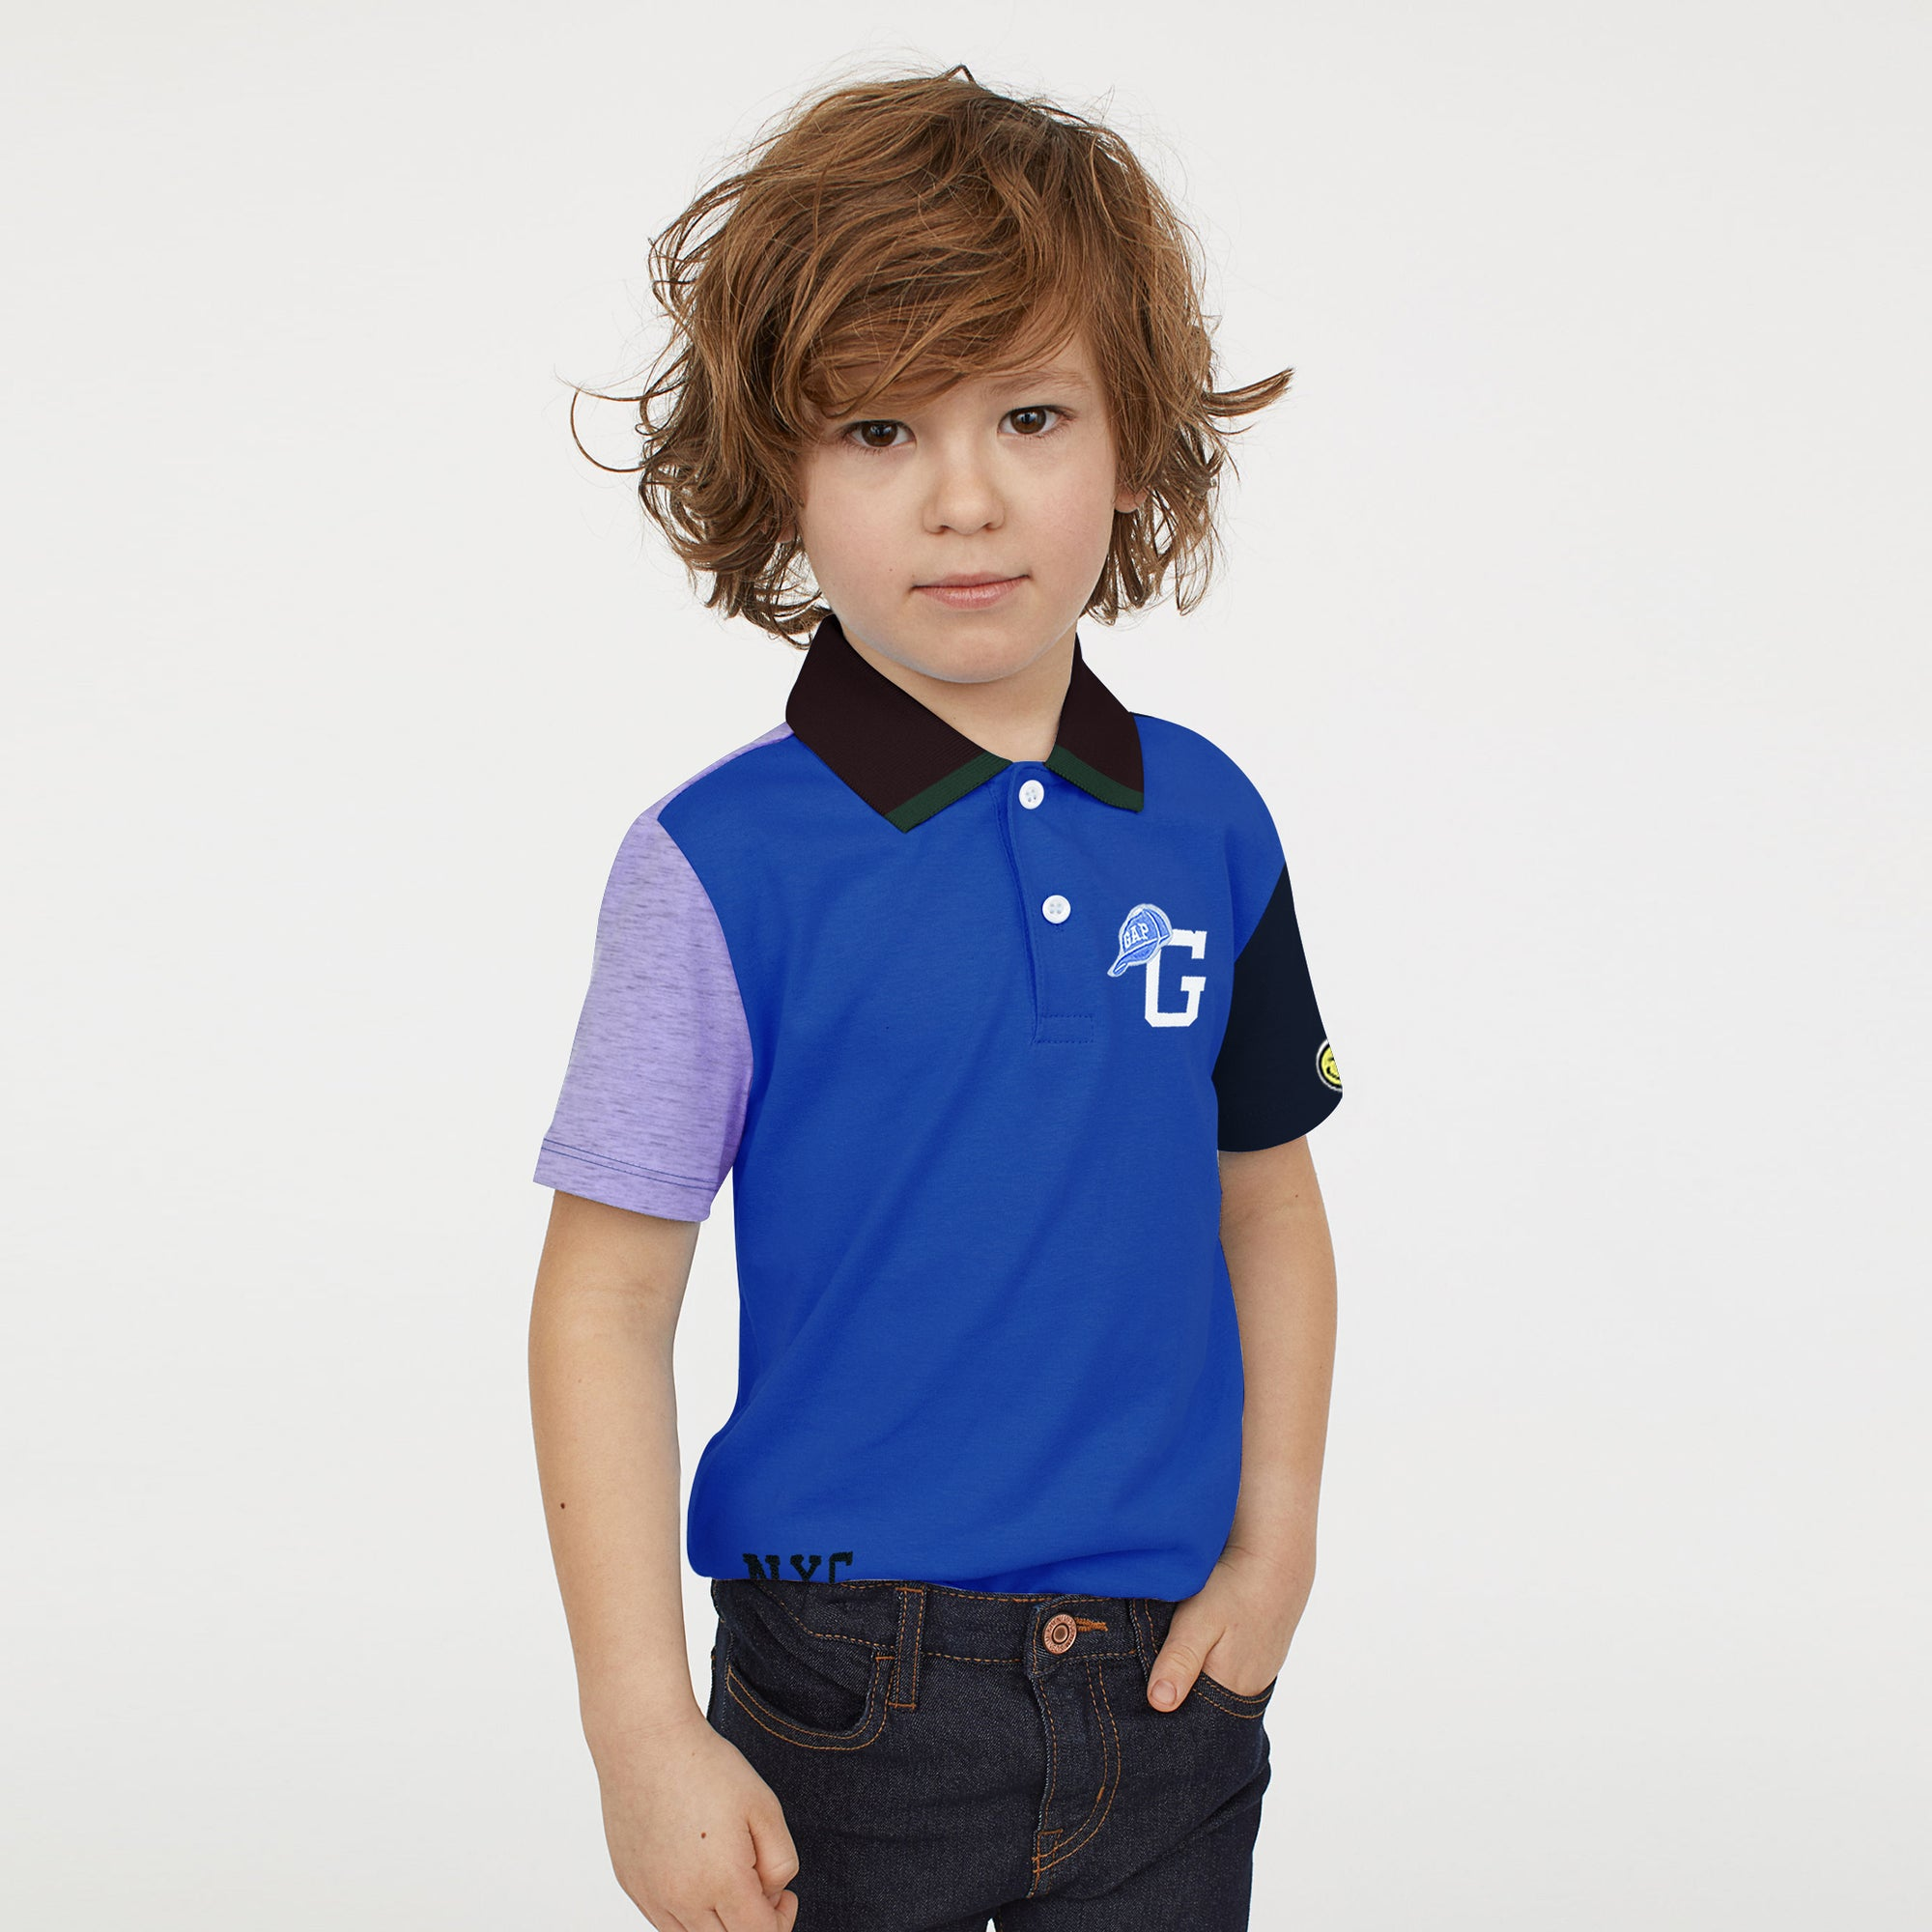 brandsego - GAP Half Sleeve P.Q Polo Shirt For Kids-Purple with Panels-BE8514